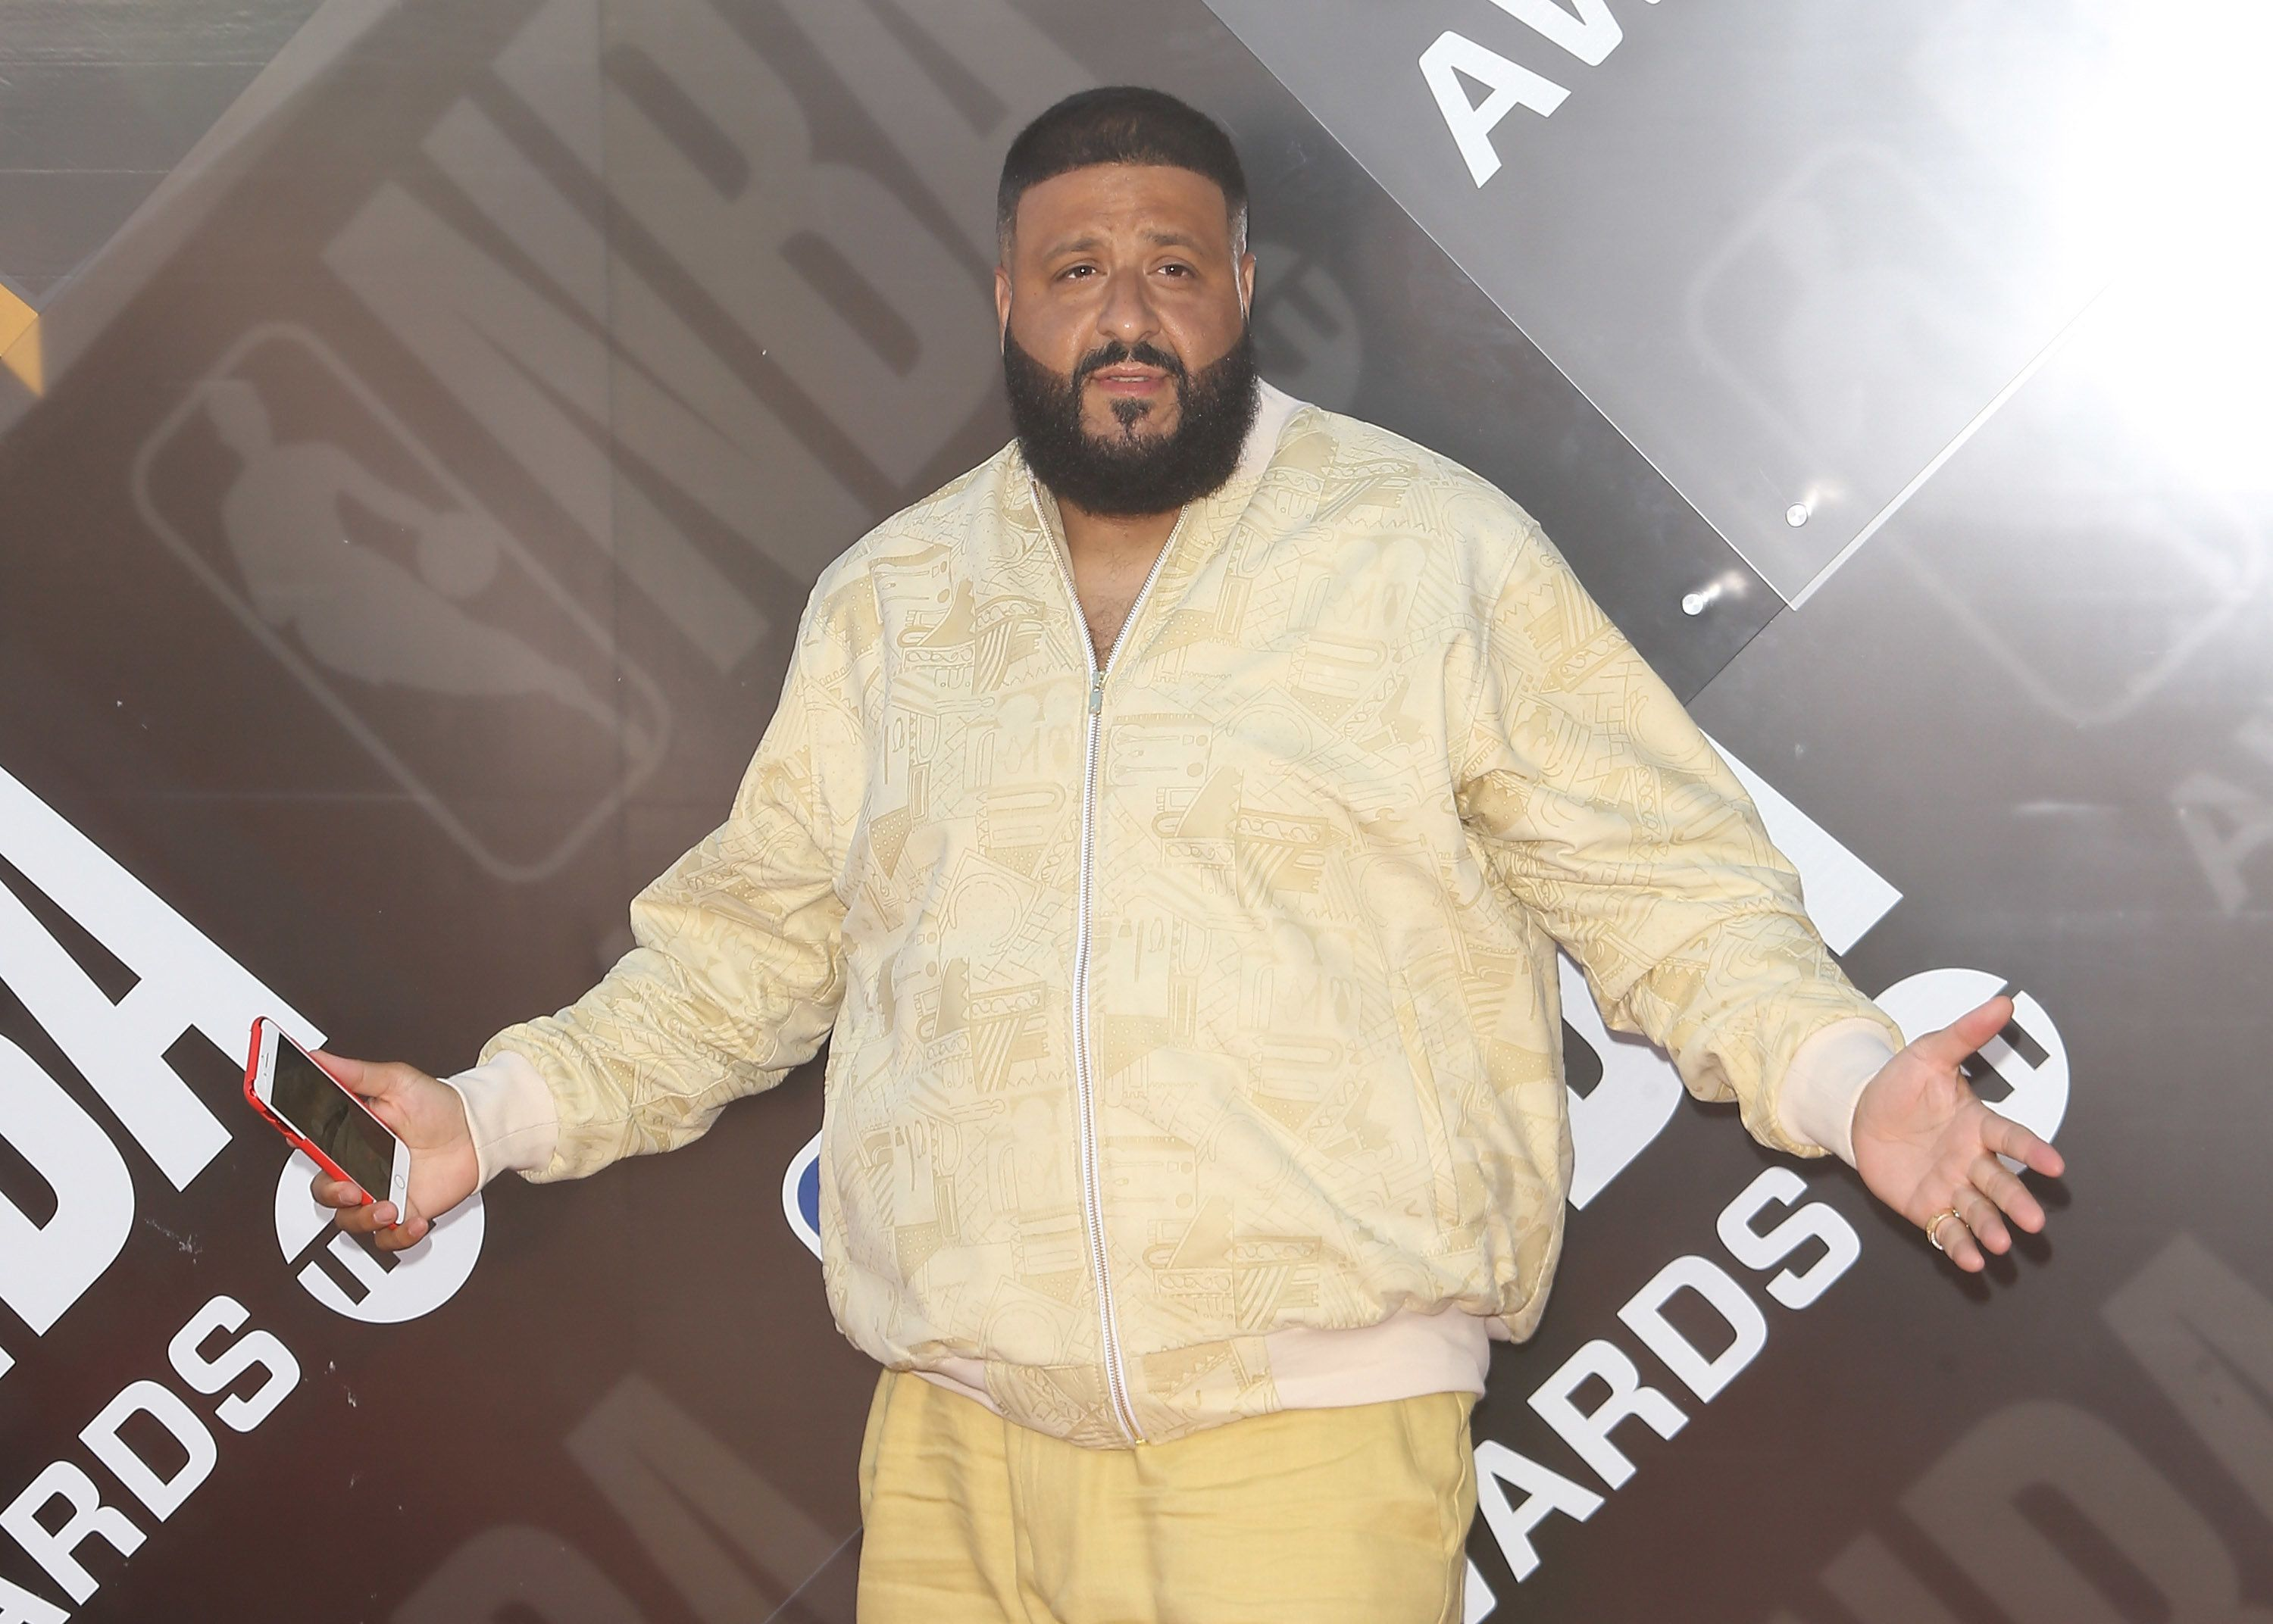 DJ Khaled Cancels Wireless Appearance Due To 'Travel Issues', Hours After 'Still On Vacation'